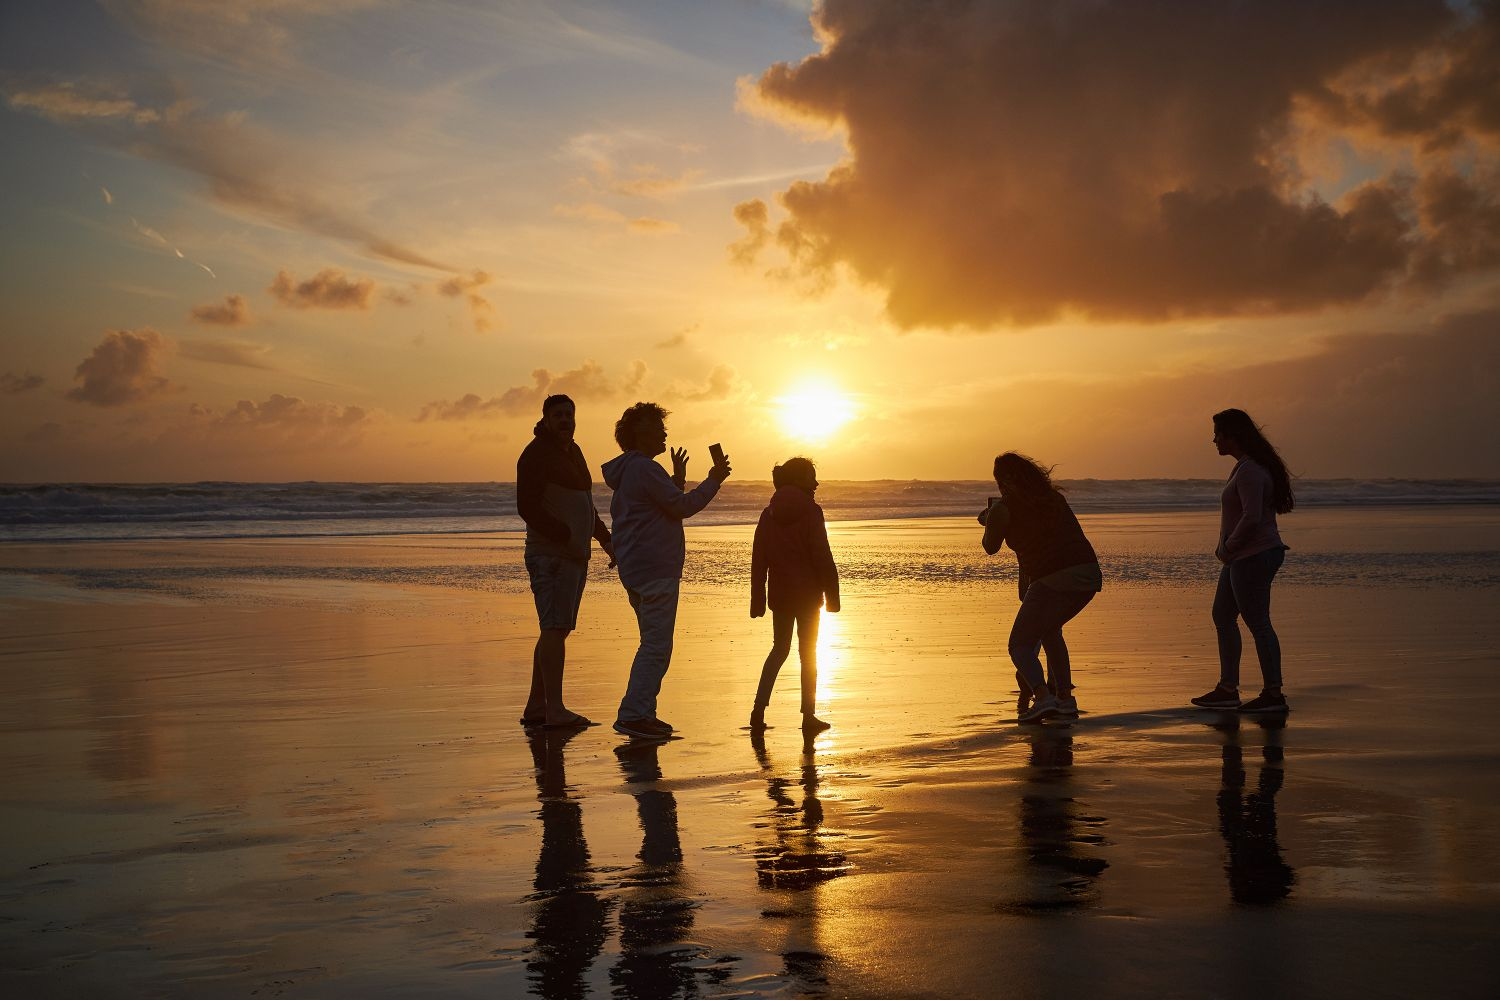 sunset_family_beach_Spark_D1_S9-R-0011.jpg